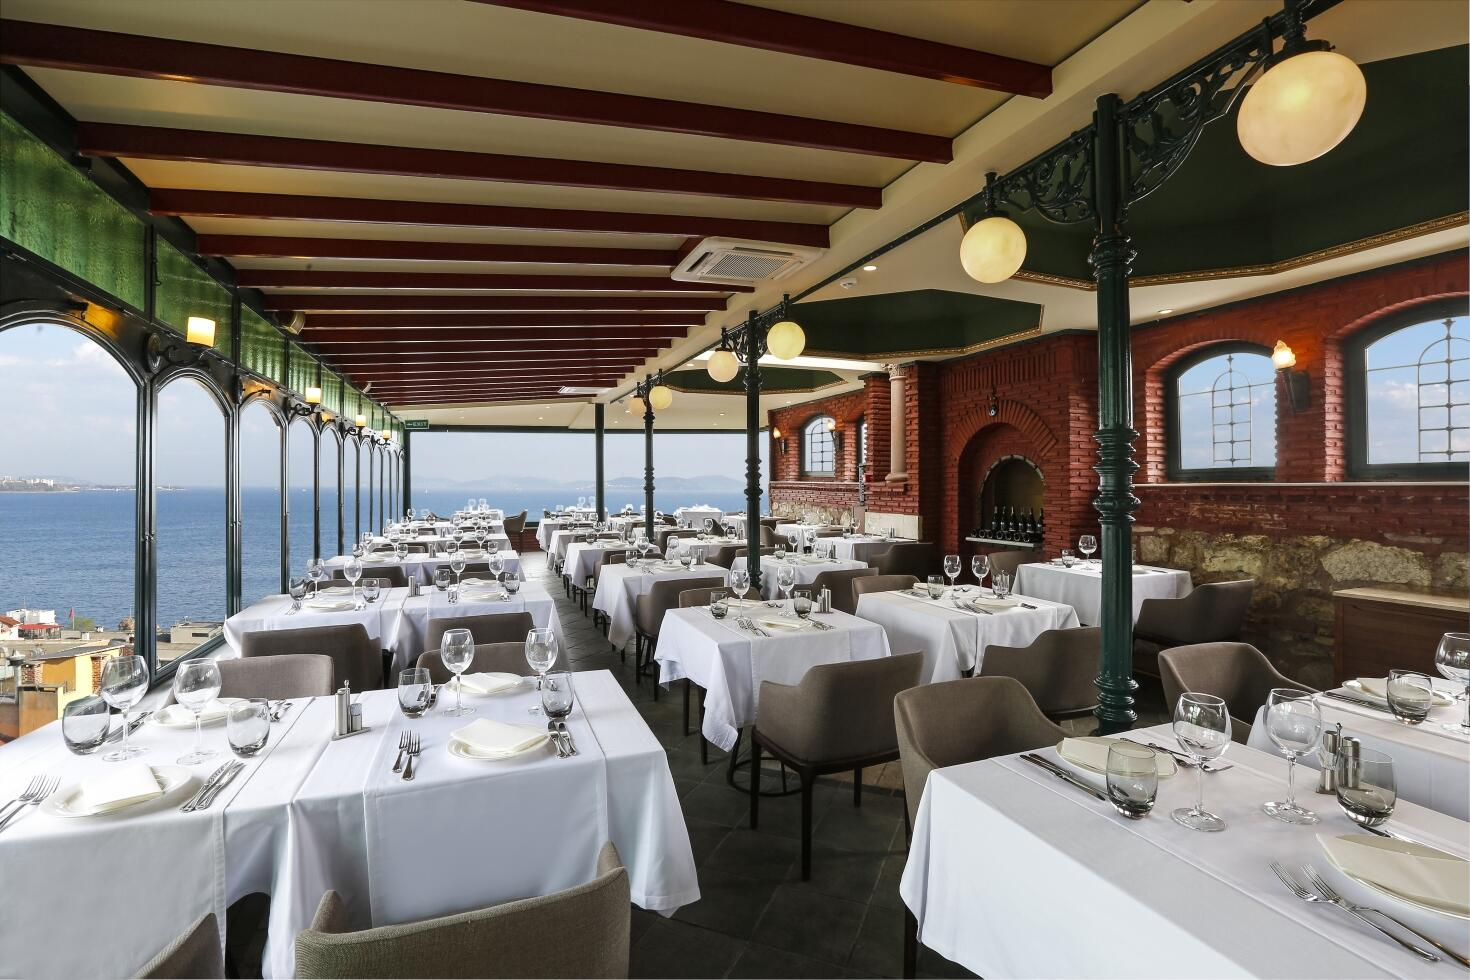 Restaurant at Sultanahmet Palace Hotel in Istanbul